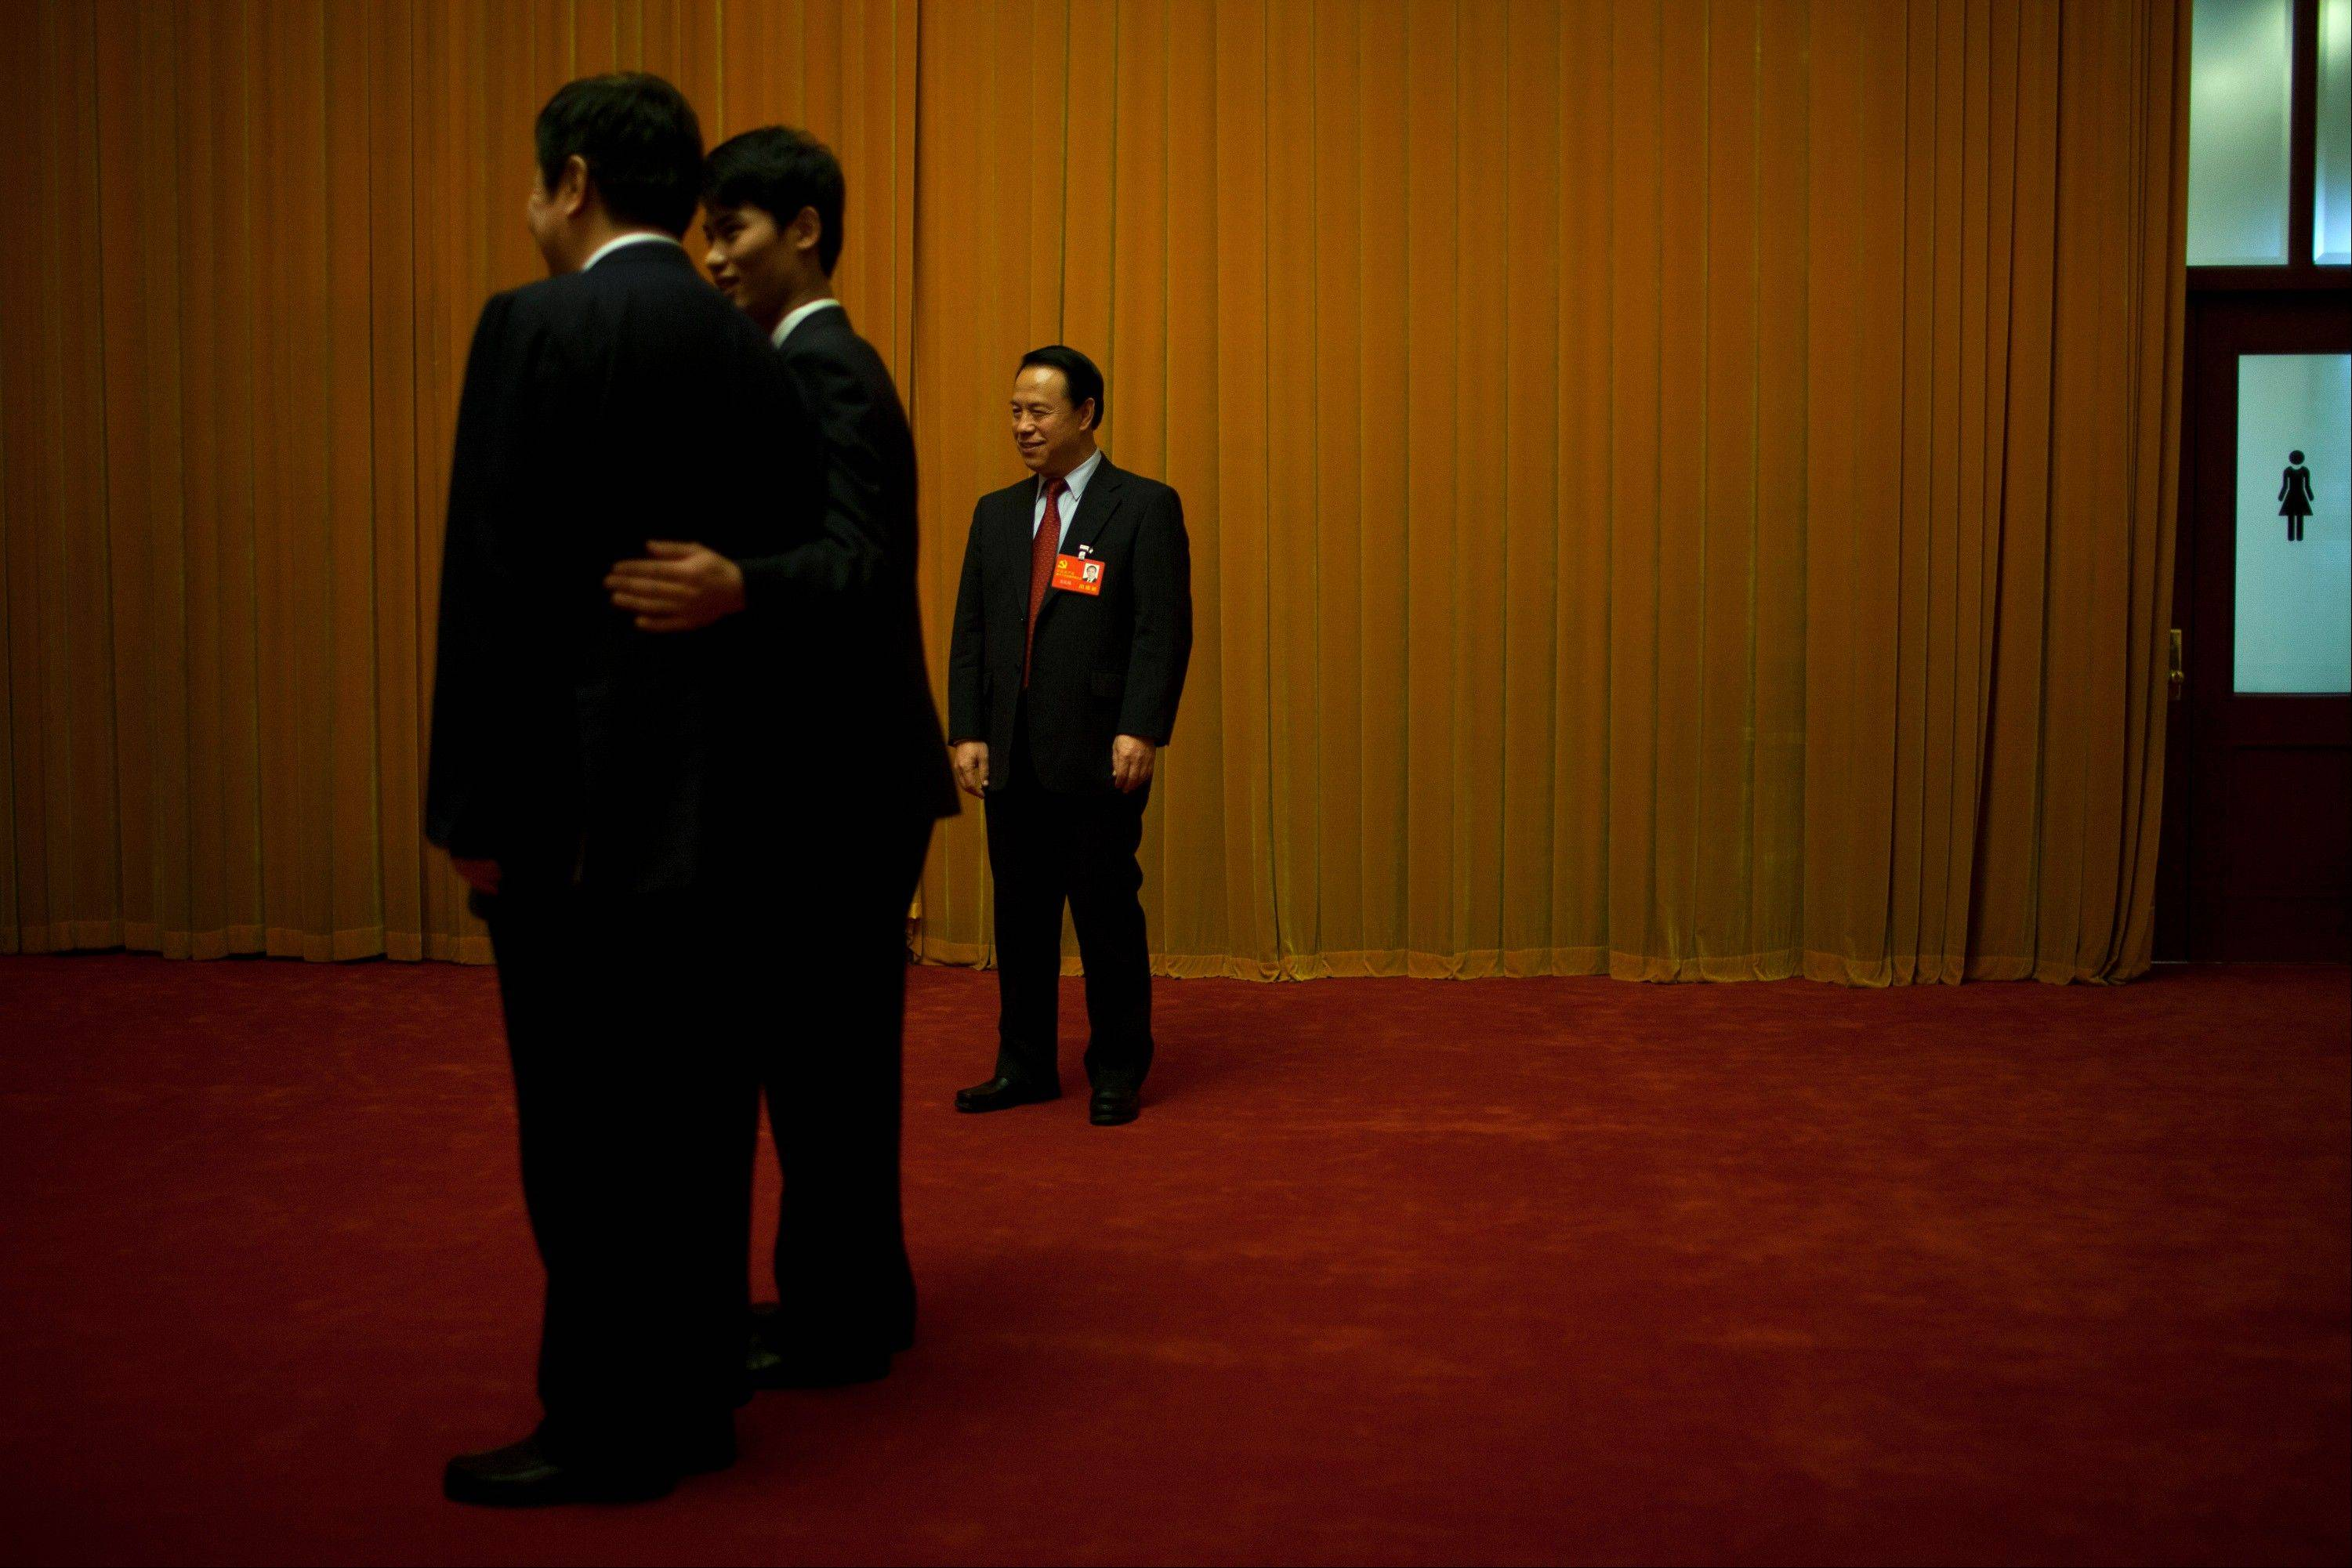 A Communist Party delegate, standing in the background, watches as an usher, front right, puts his arm around another delegate Friday to pose for a photo near a restroom at the Great Hall of the People, where group discussions of the 18th Communist Party Congress is held in Beijing, China.